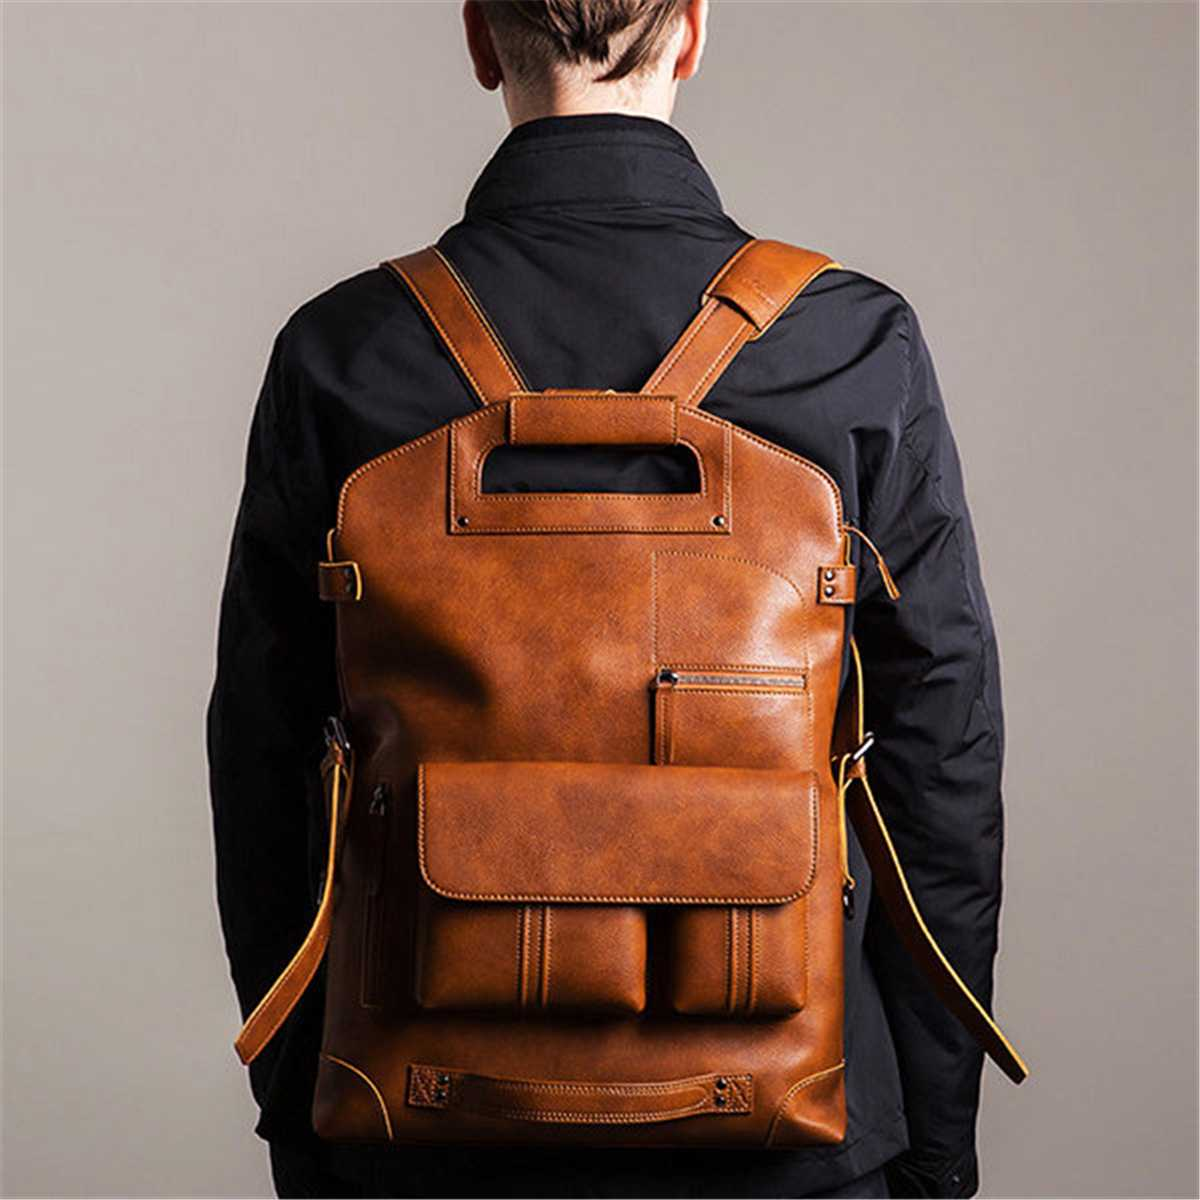 Foldable Genuine Leather Men Backpacks New Fashion Multifunction Men Solid Handbag Luxury Brand Large Computer Laptop Bag